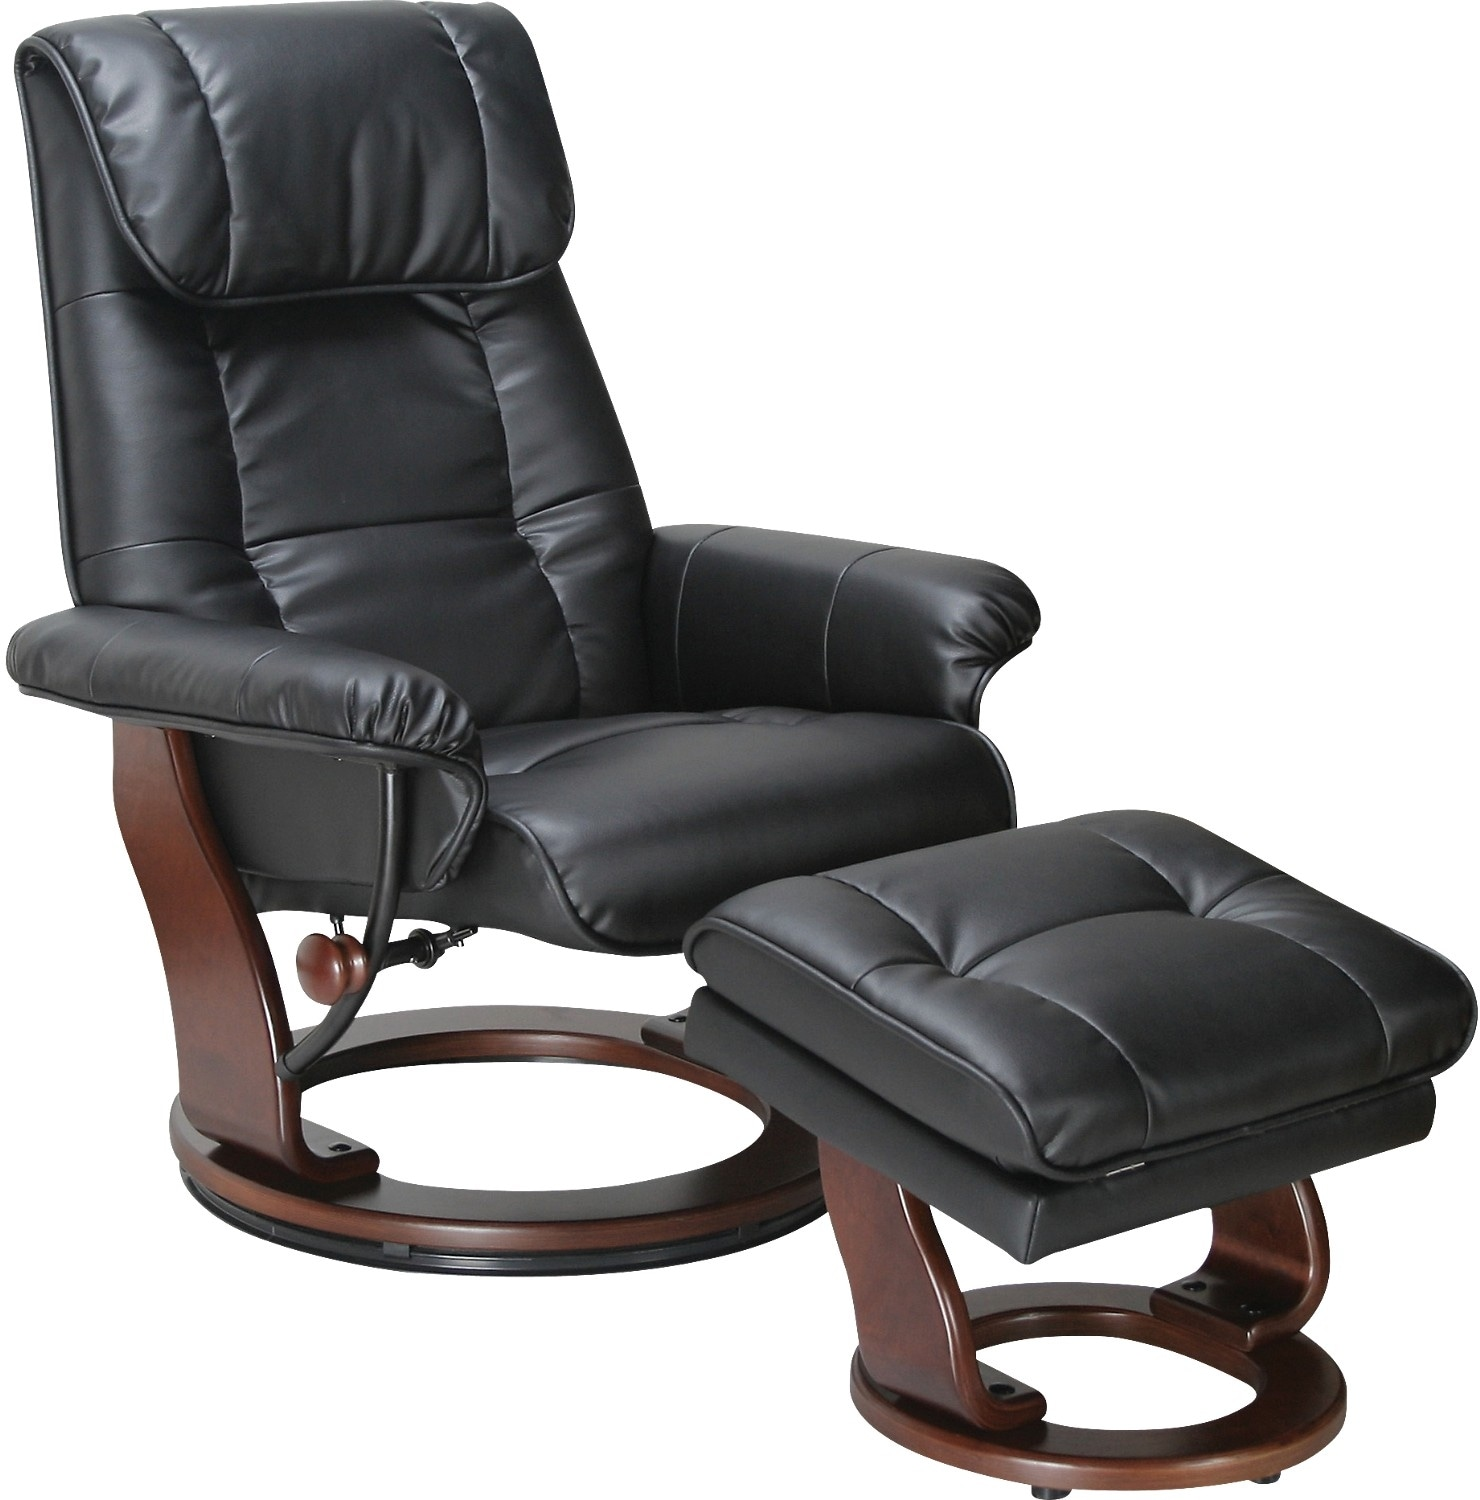 Dixon Black Reclining Chair & Ottoman